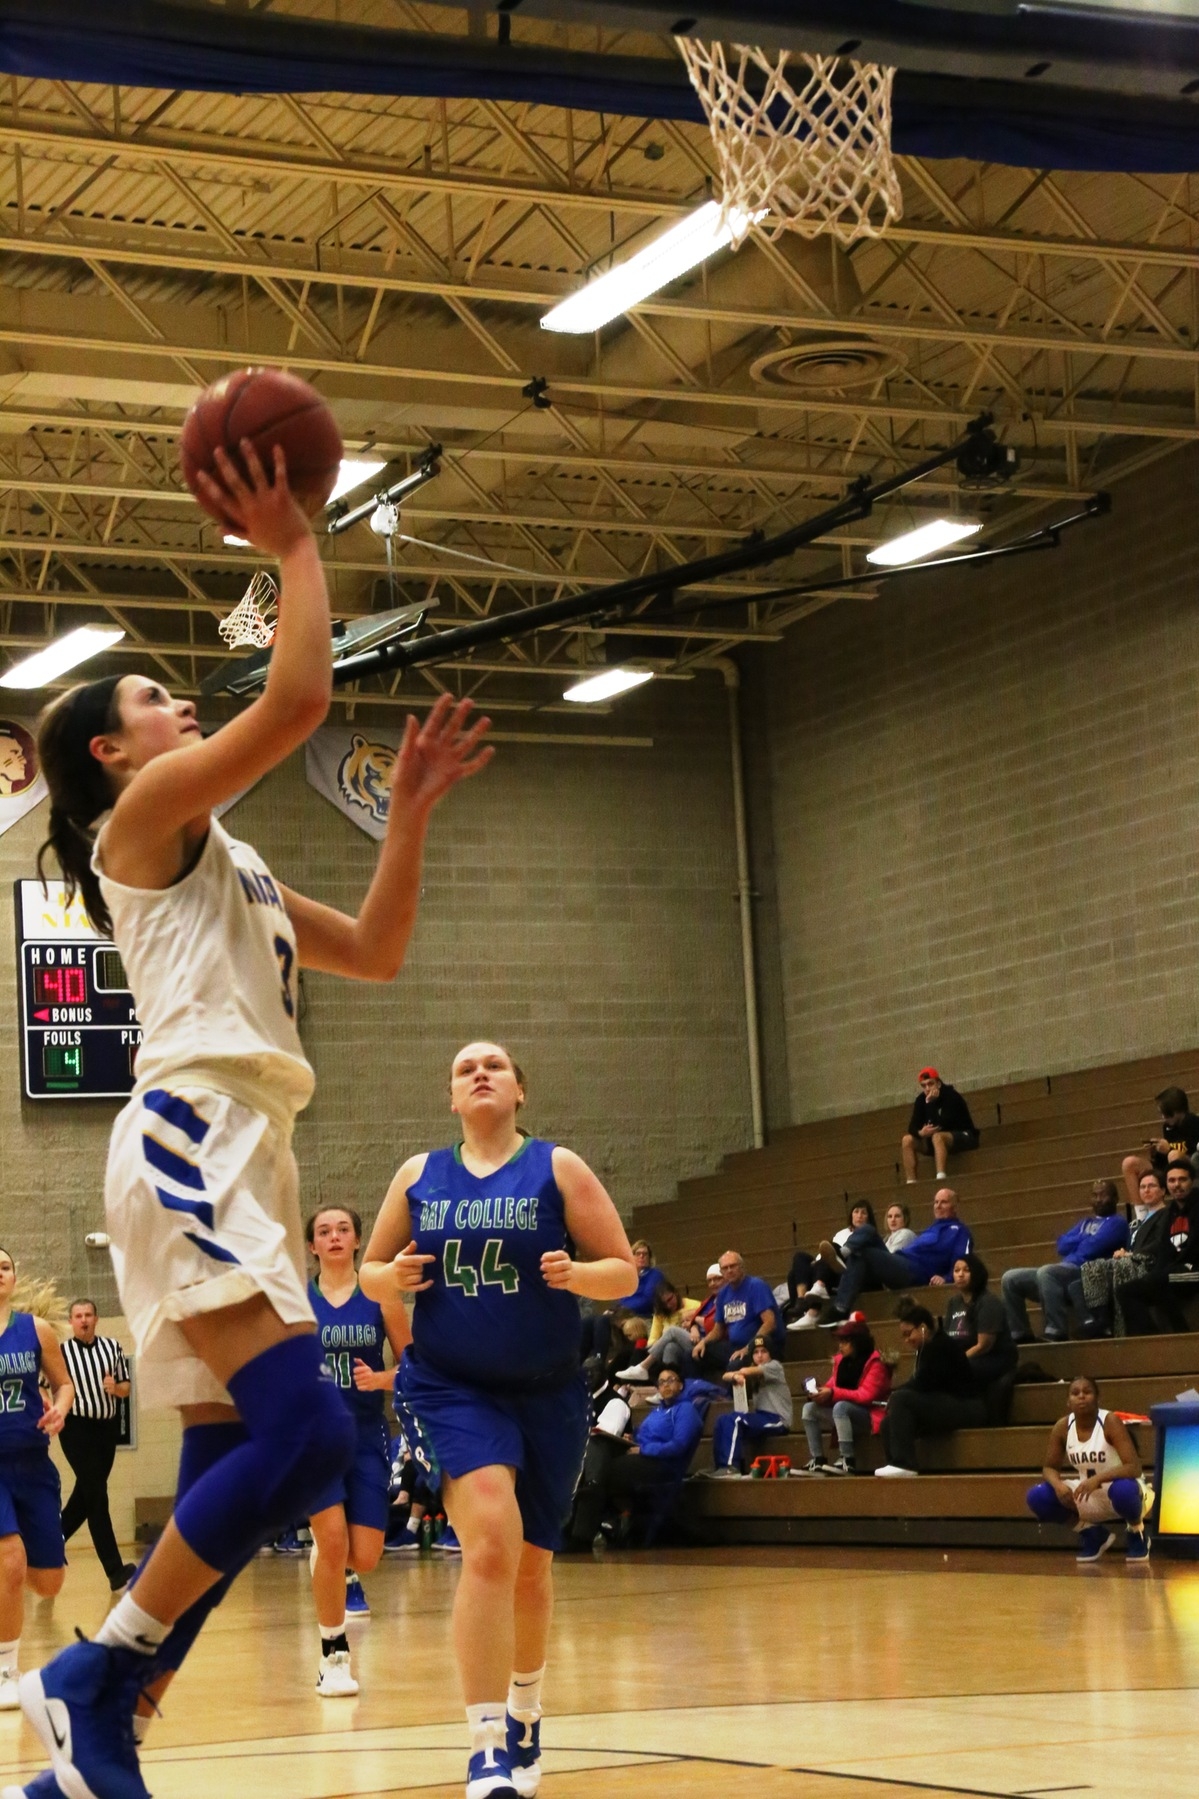 Mandy Willems scores on a layup against Bay College in Saturday's game at the Konigsmark Klassic.